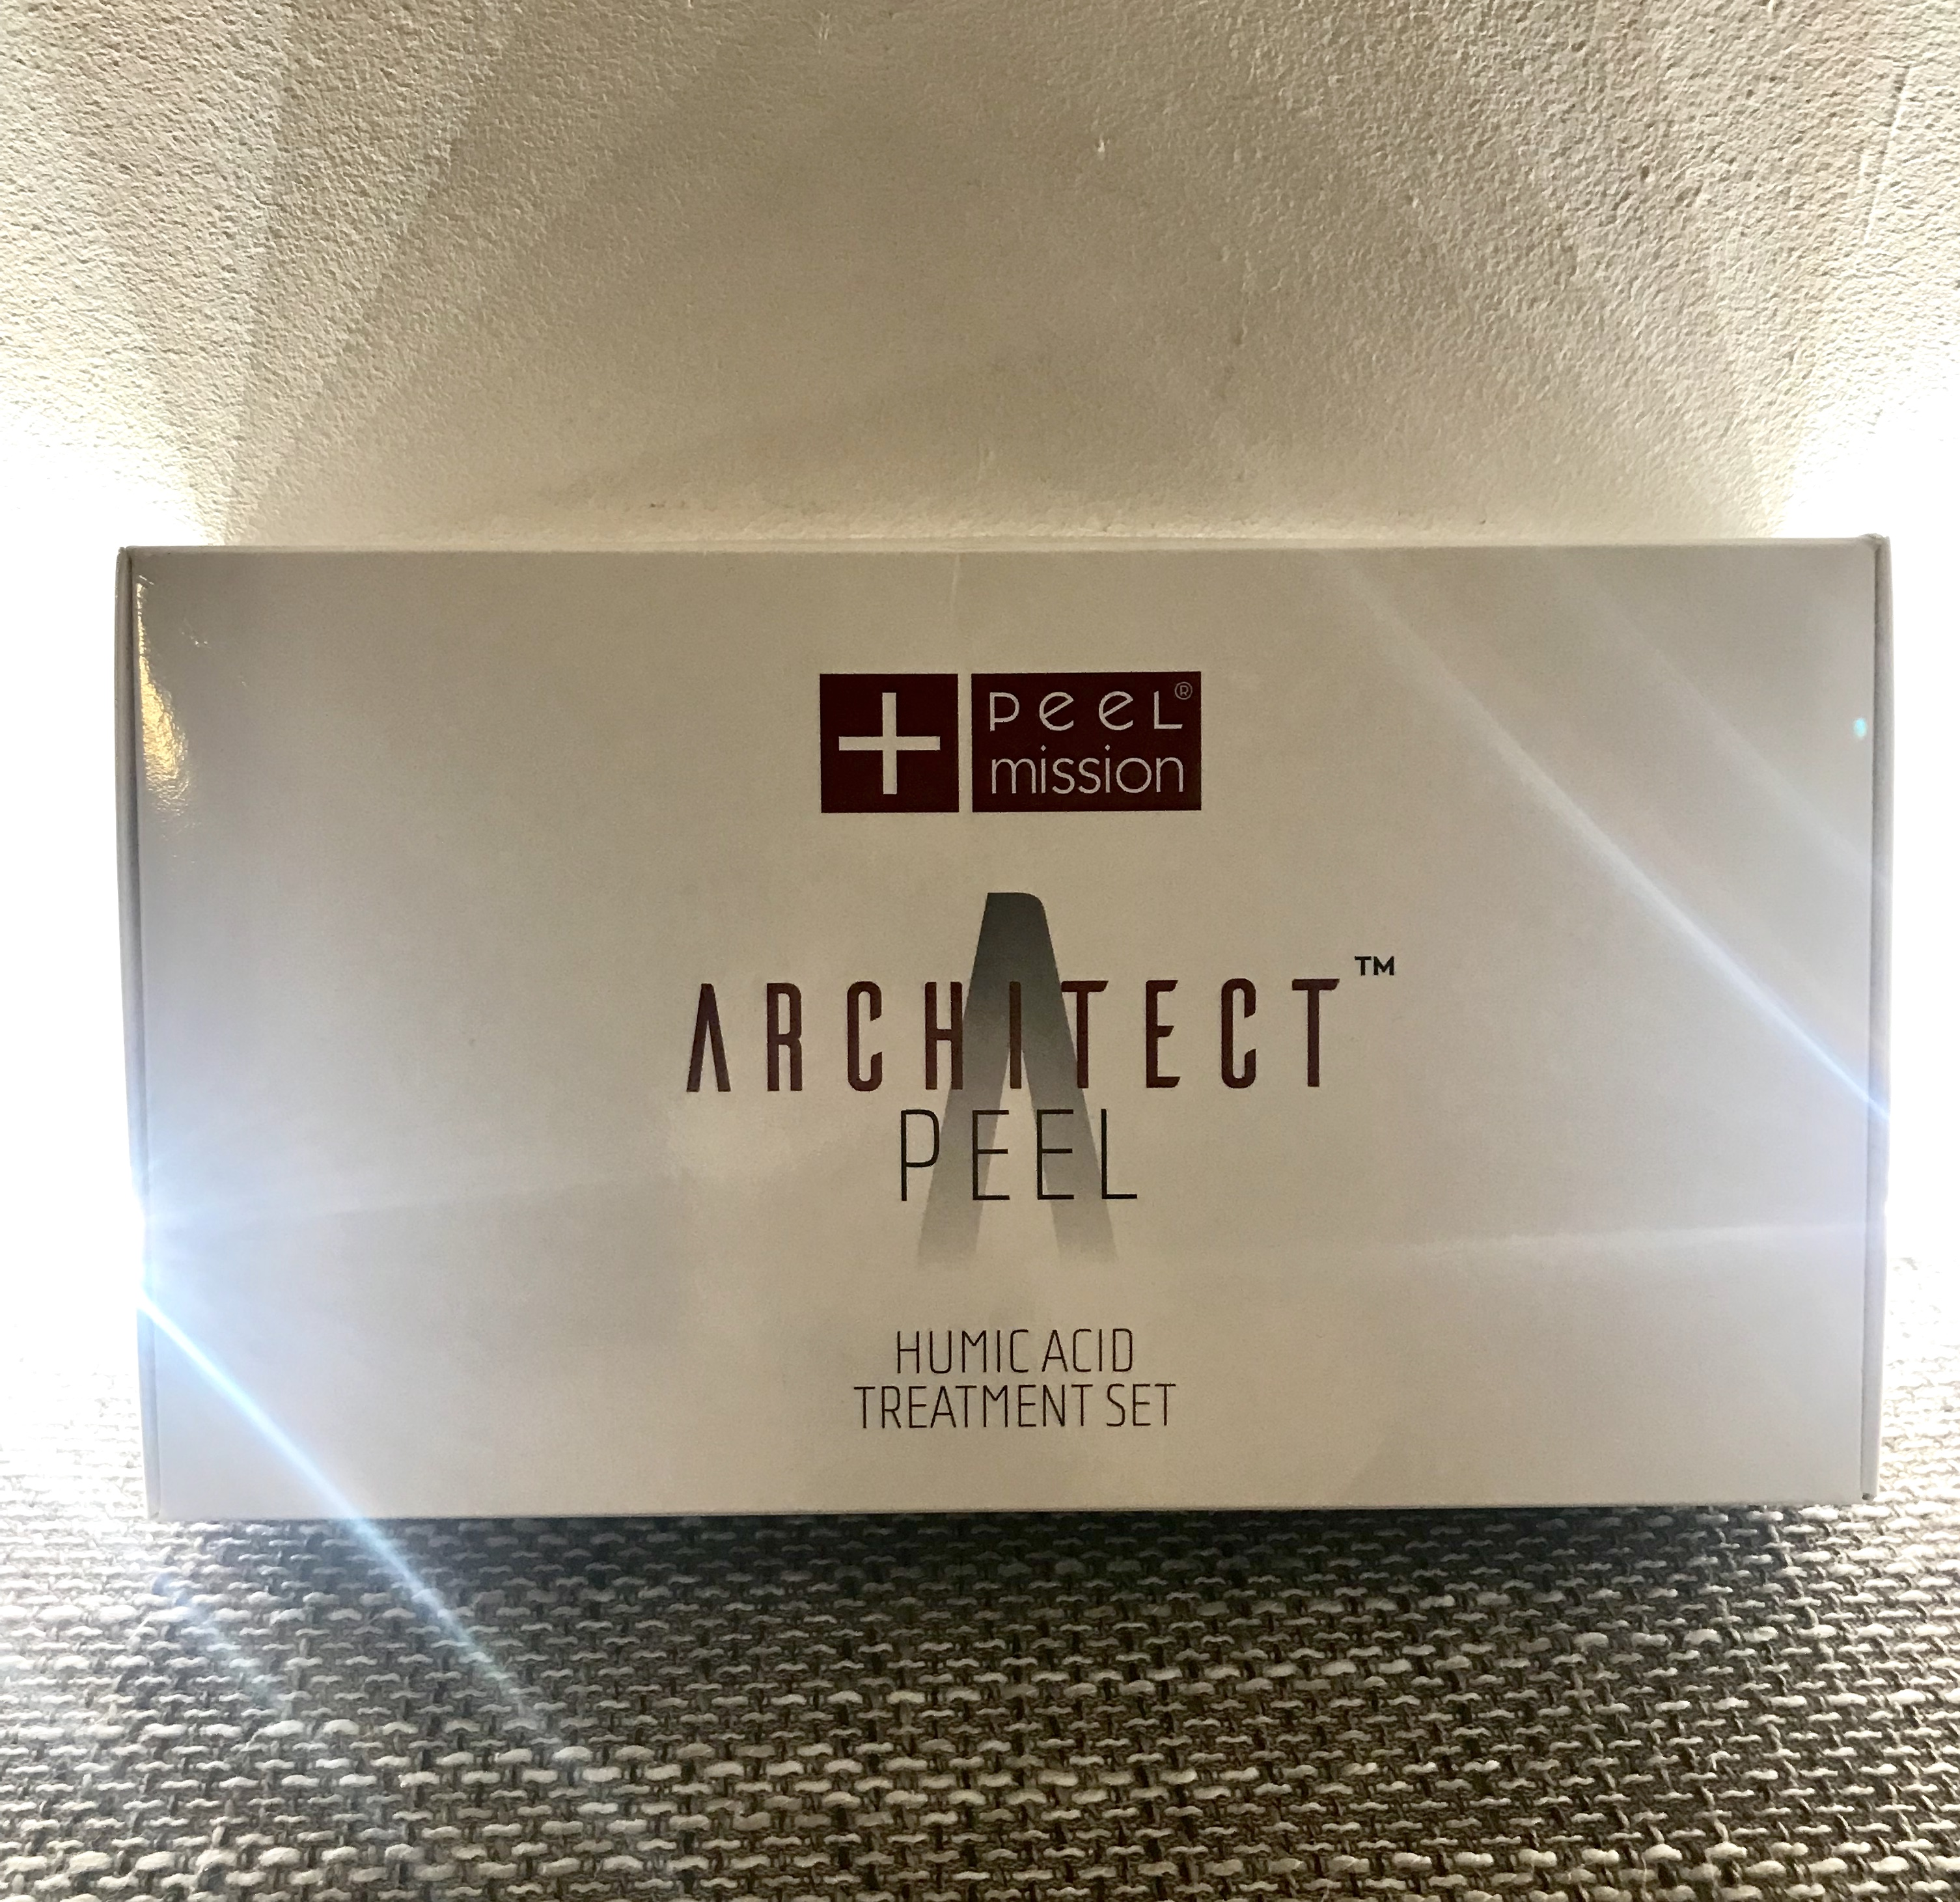 architect peel - peel mission